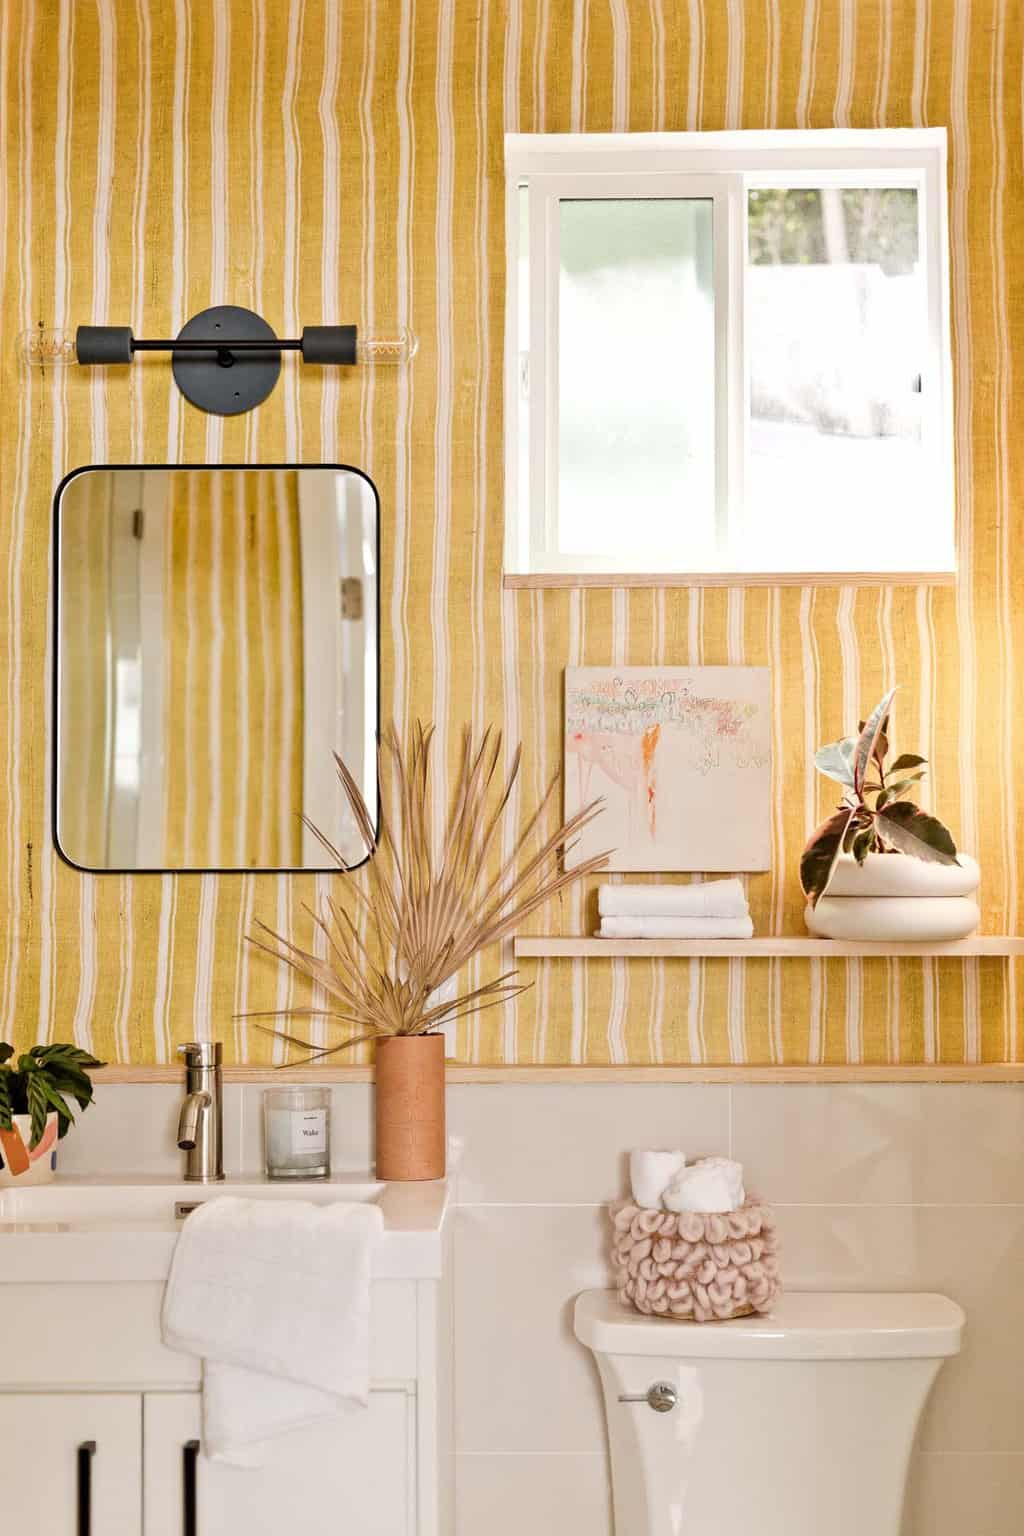 Yellow striped bathroom with black modern accents and natural elements.